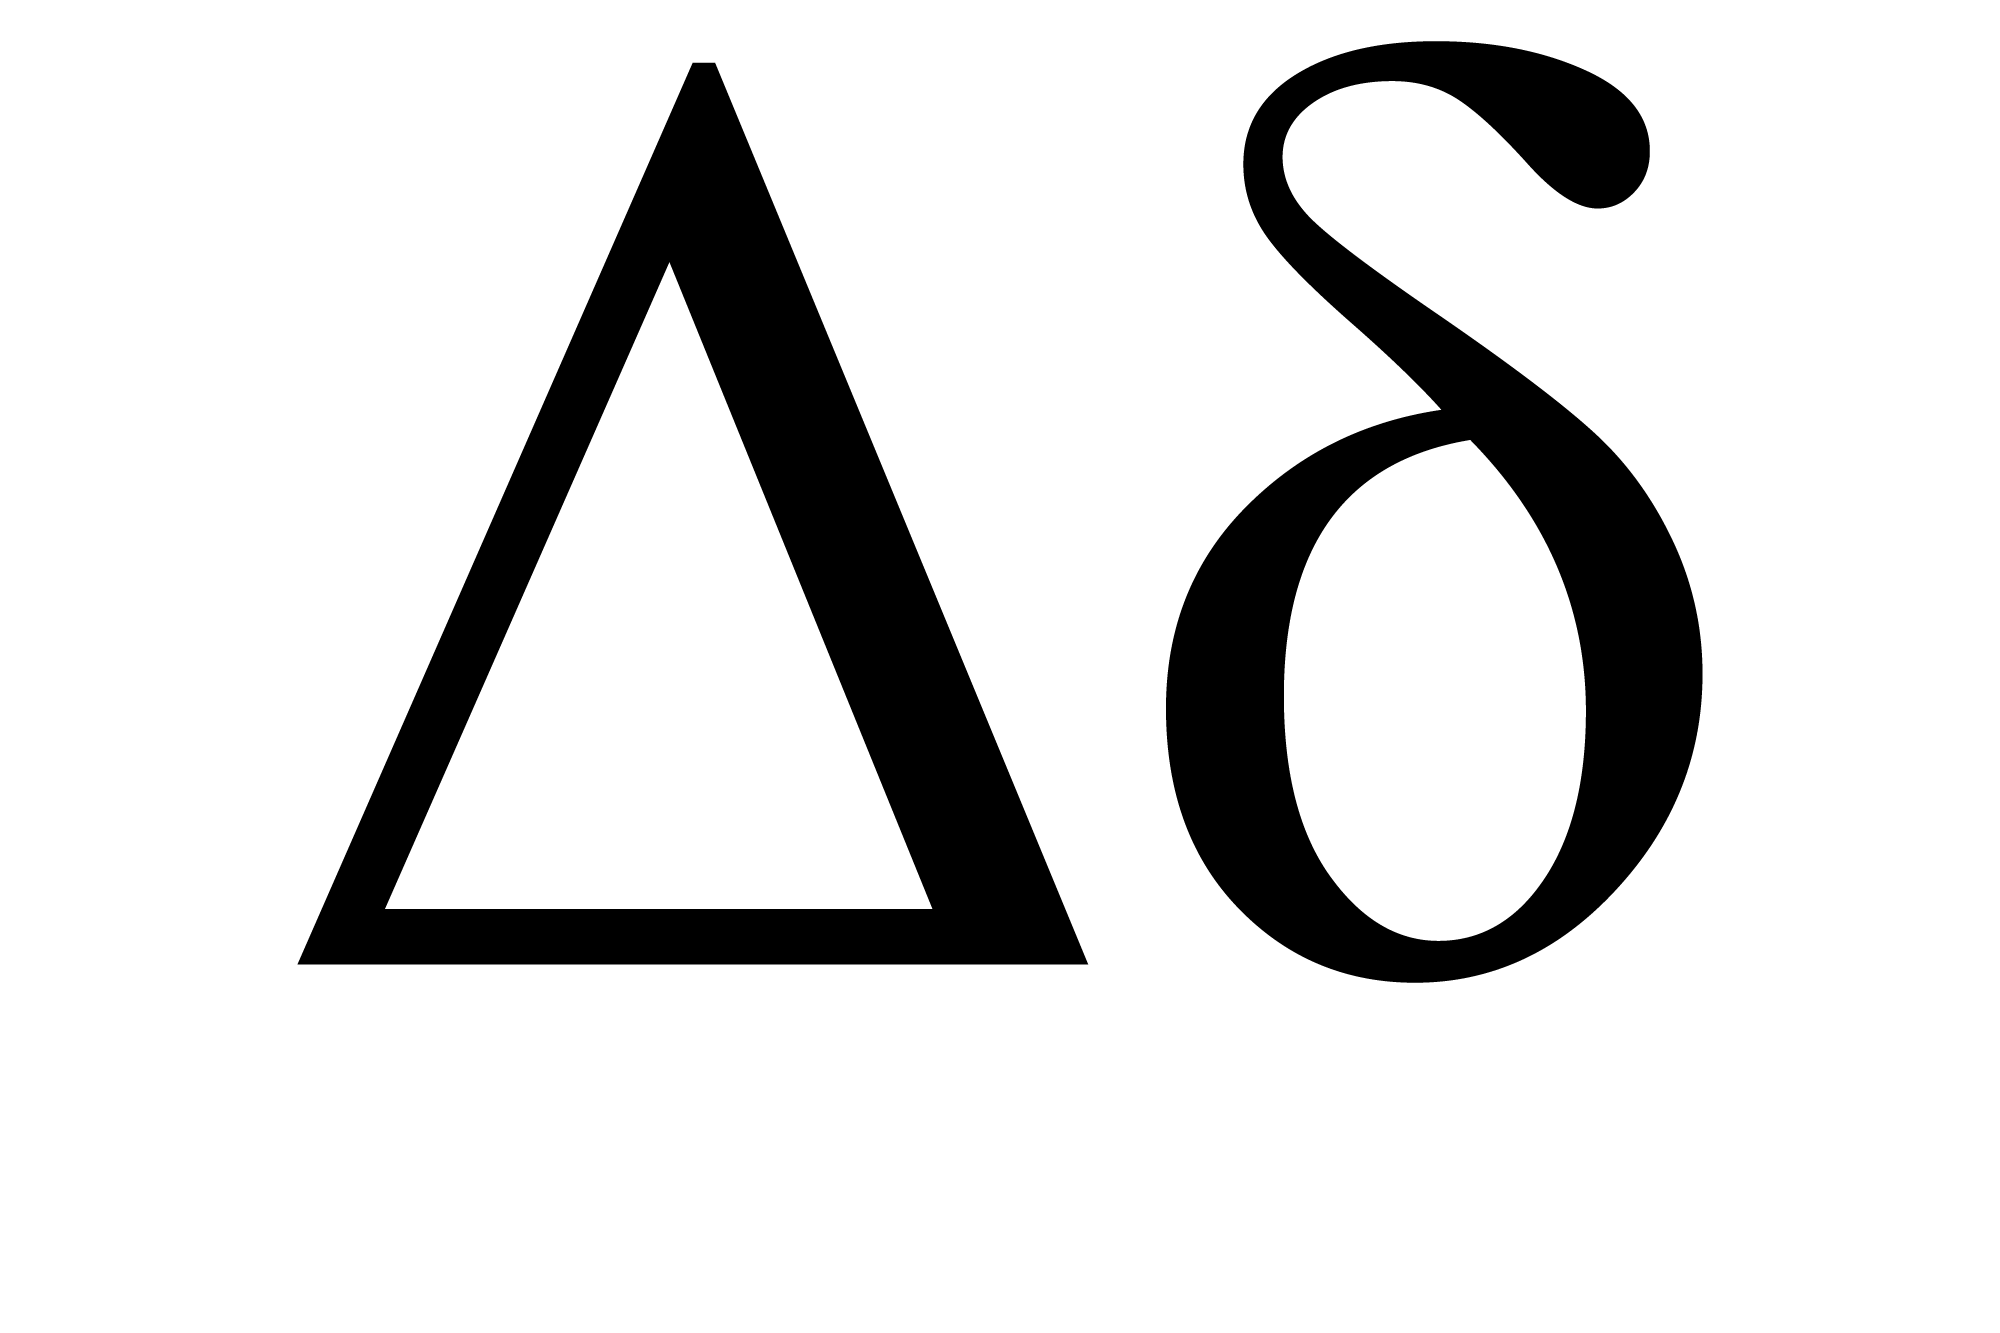 Delta Symbol And Its Meaning - Delta Letter/Sign In Greek Alphabet And Math